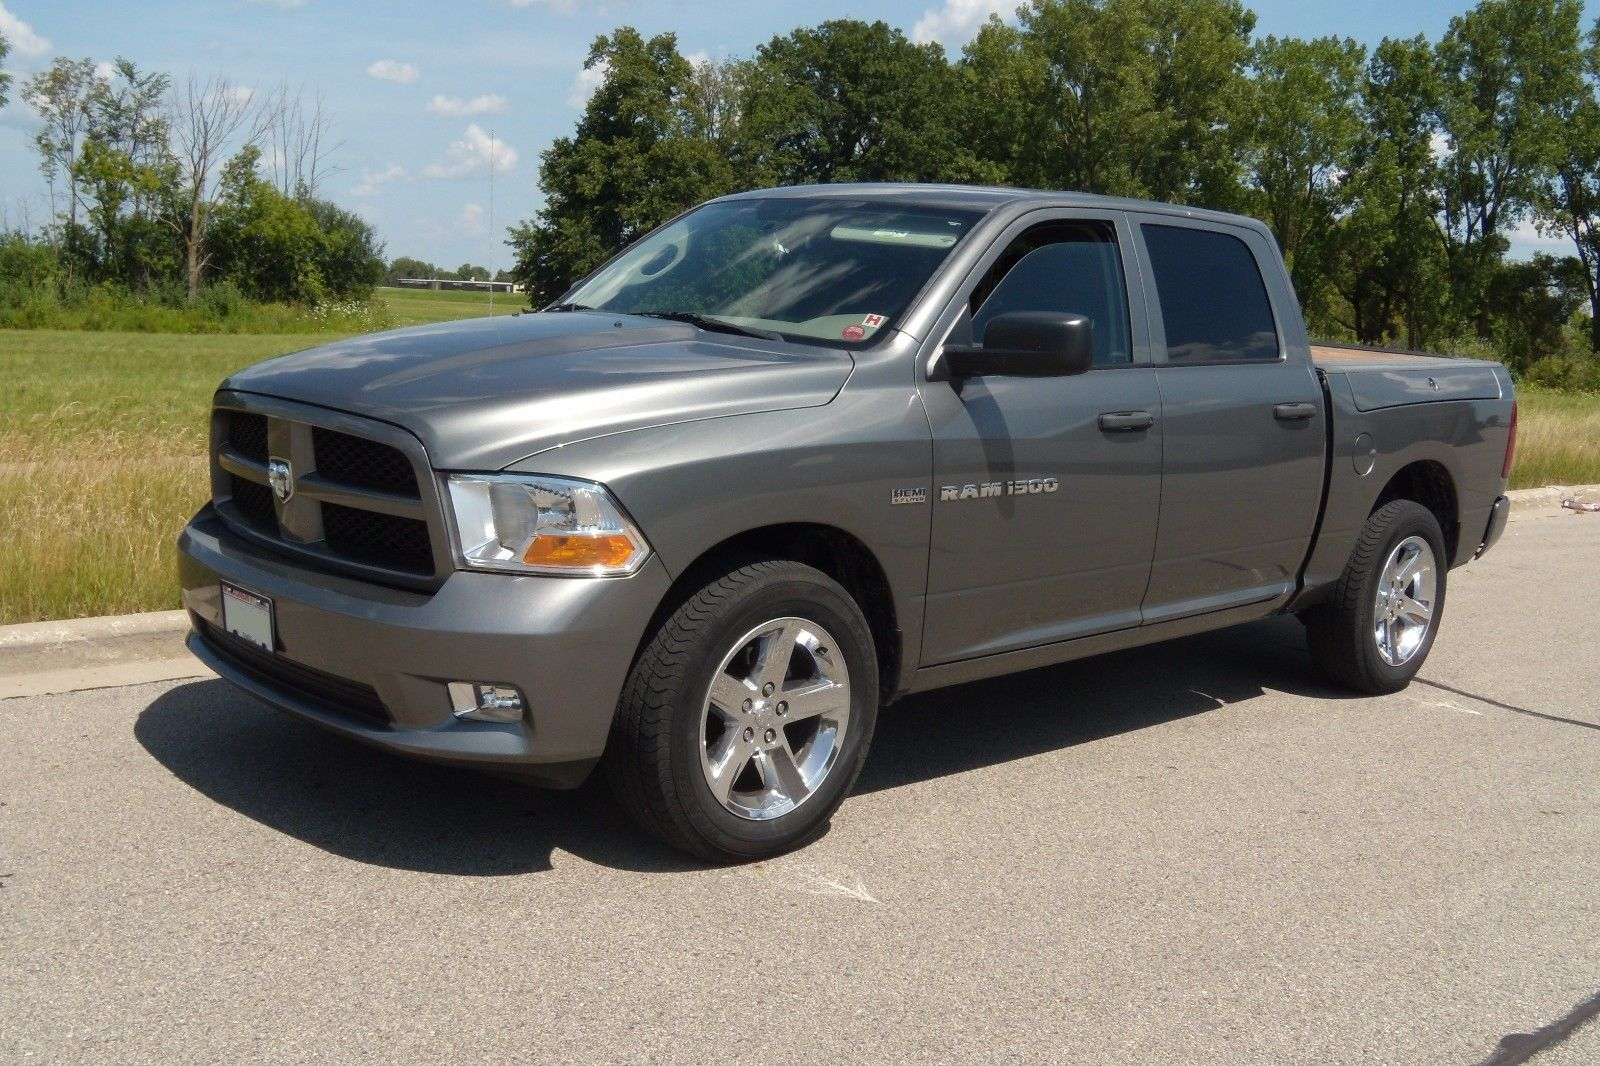 hemi powered 2012 ram 1500 quad cab pickup for sale. Black Bedroom Furniture Sets. Home Design Ideas